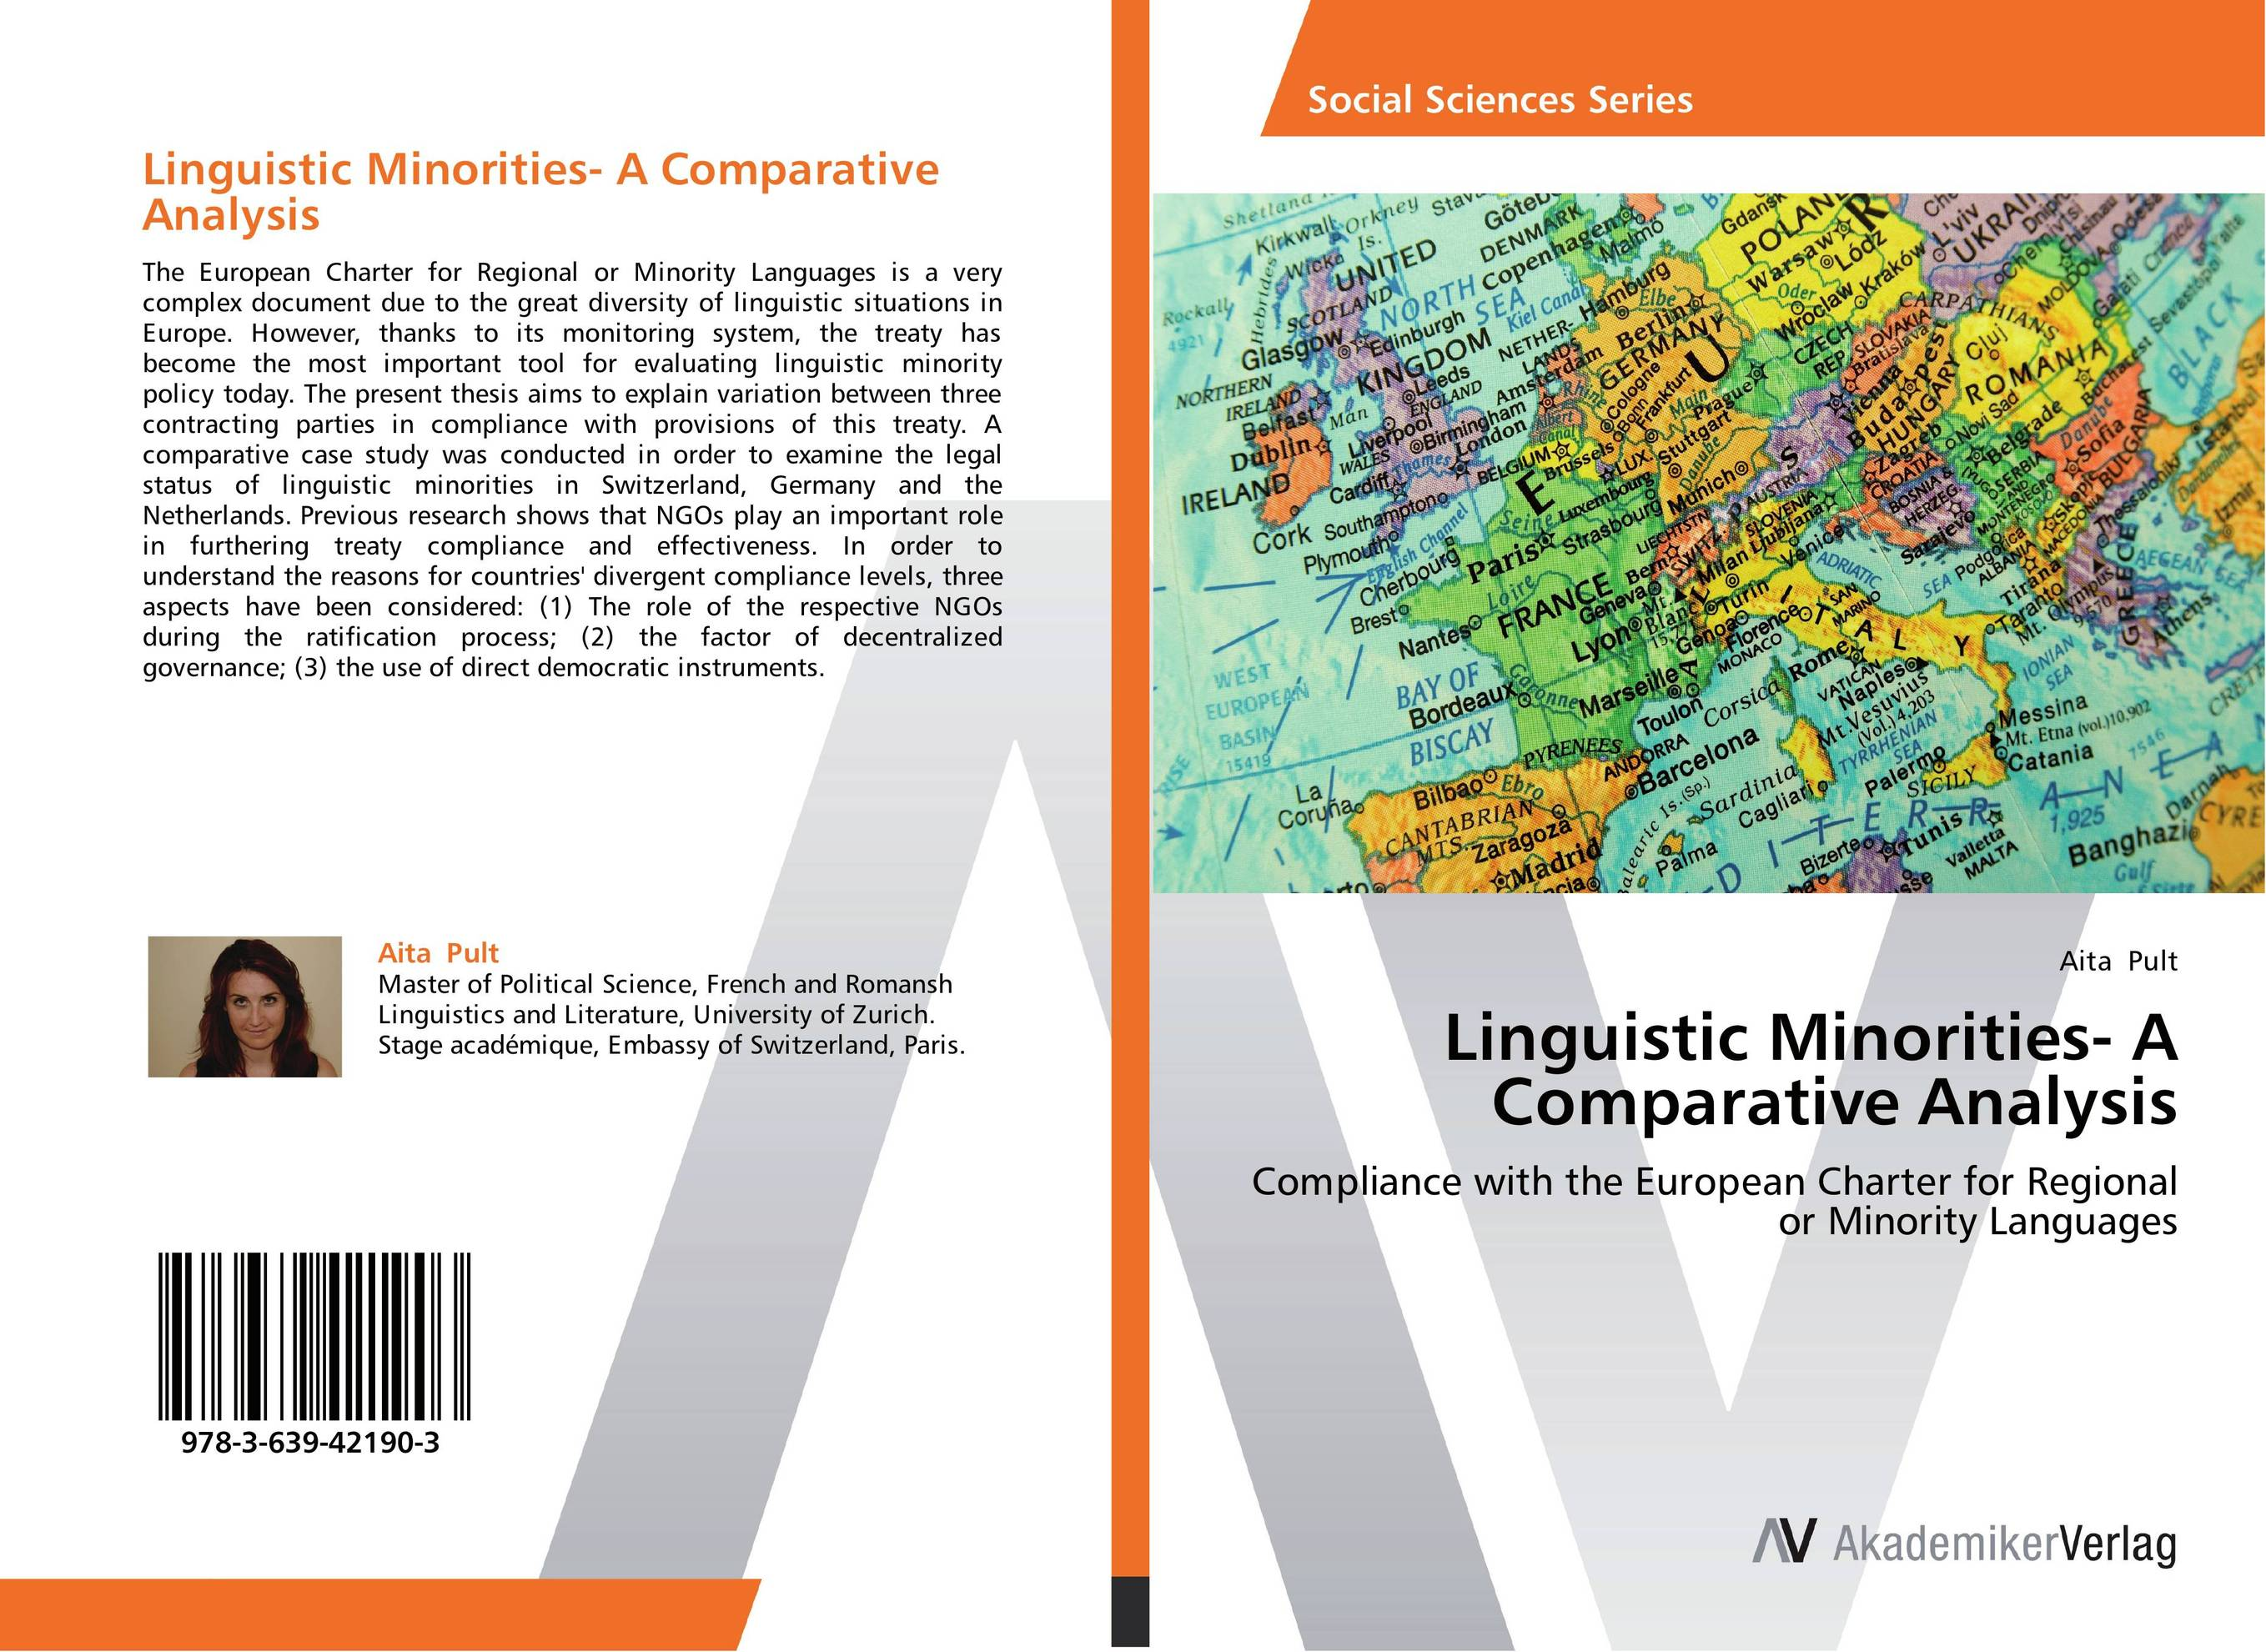 Linguistic Minorities- A Comparative Analysis voltammetric techniques for the analysis of pharmaceuticals